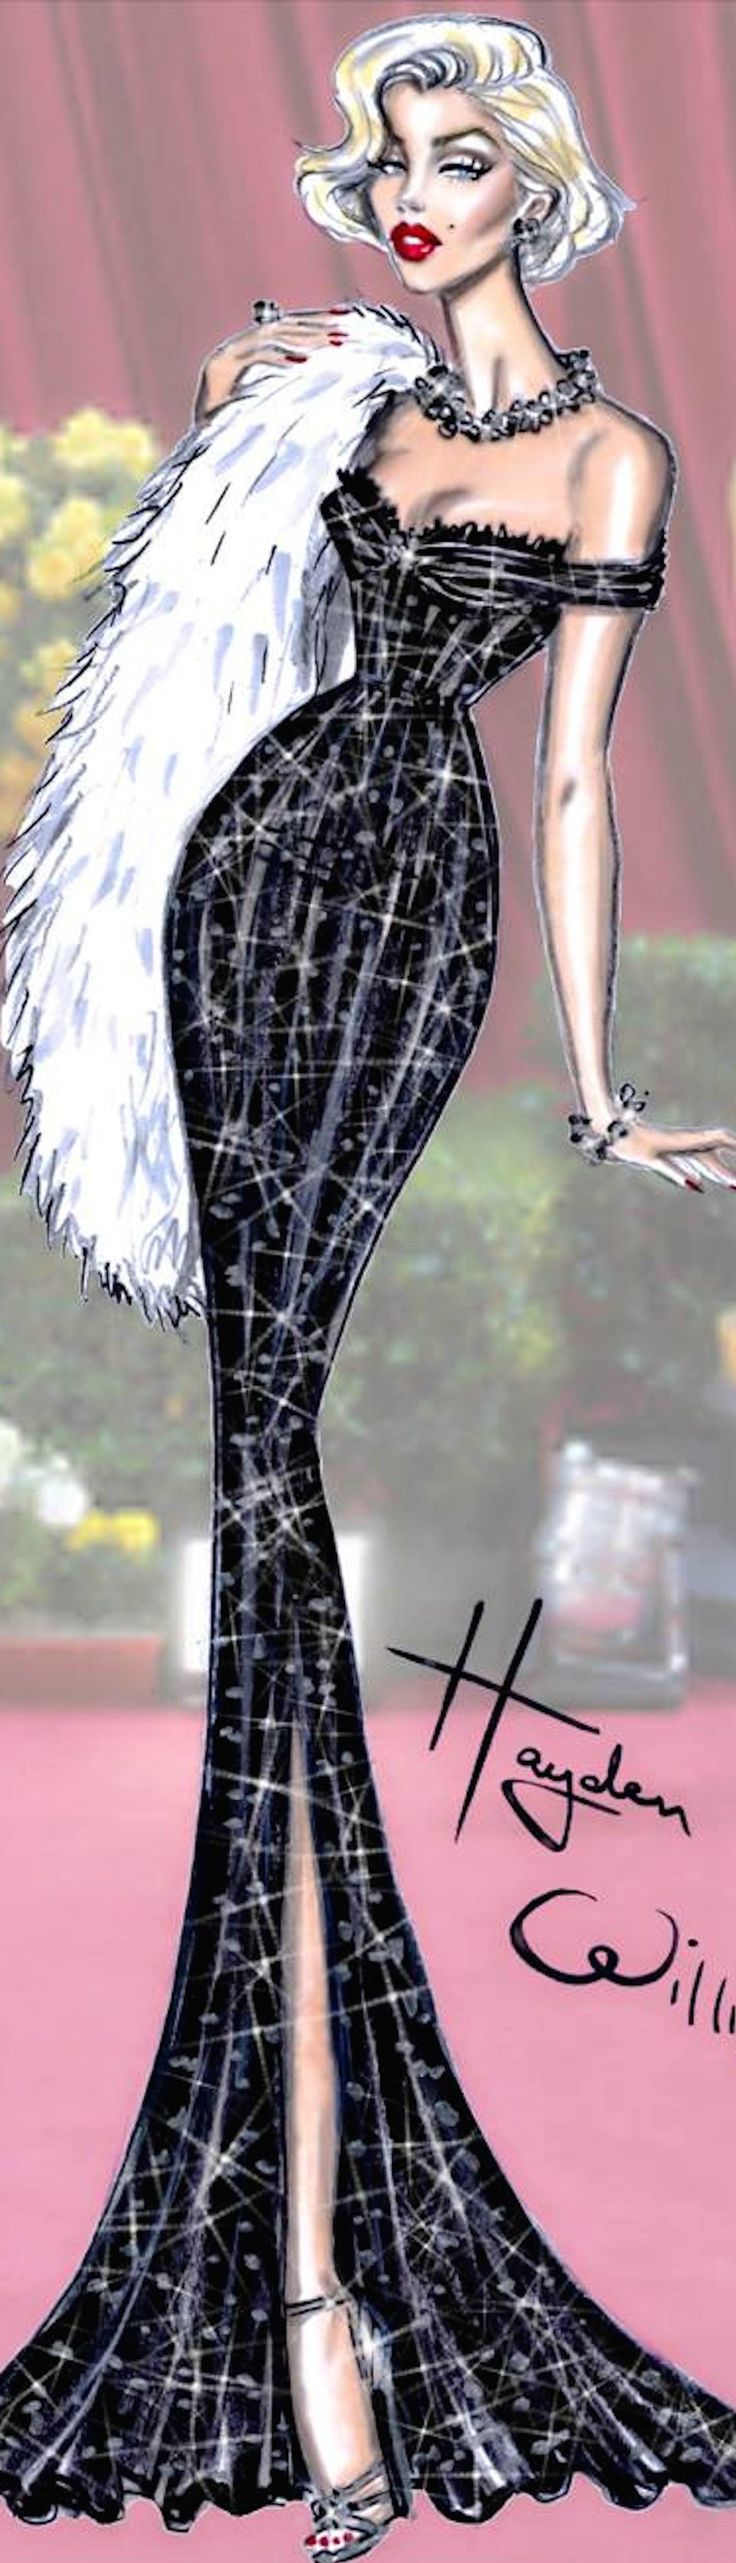 Hayden Williams Fashion Illustration | House of Beccaria#